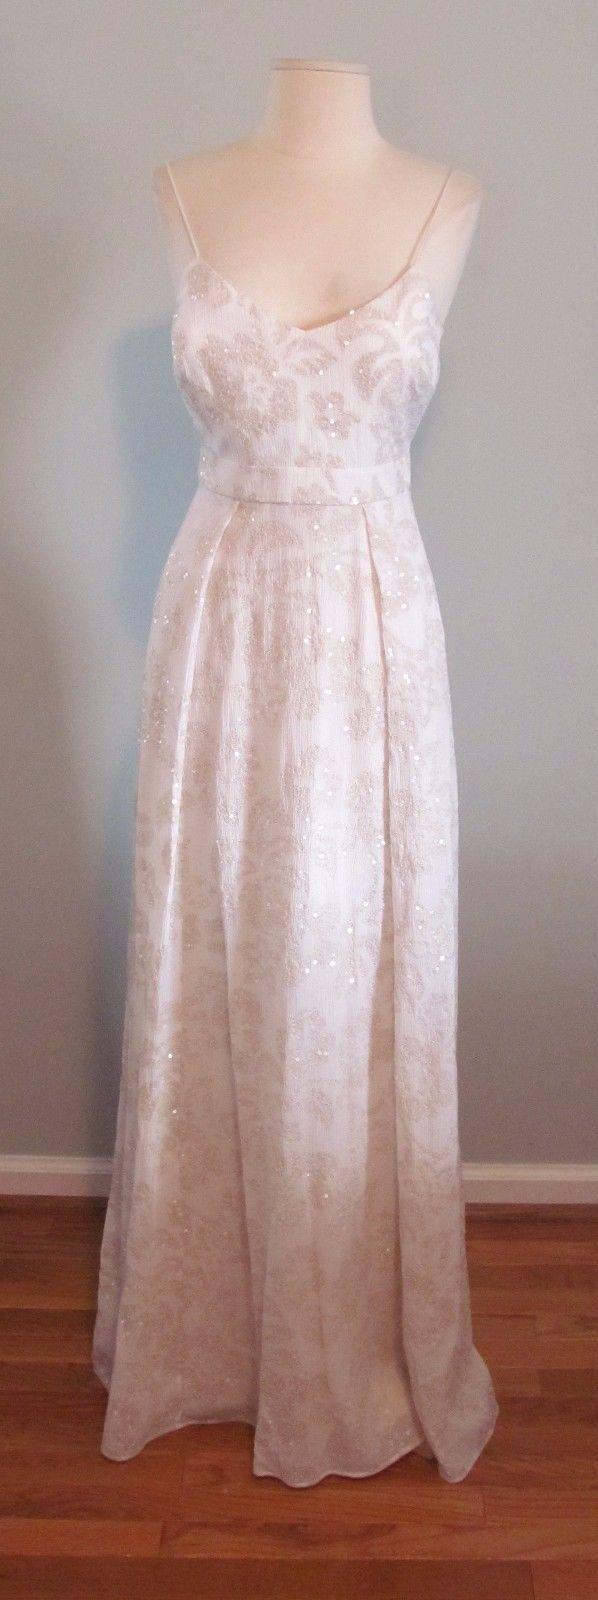 J Crew Sequin Plume Gown Size 00 Wedding Dress Ivory C1227 Ivory Wedding Dress Dresses Wedding Dresses